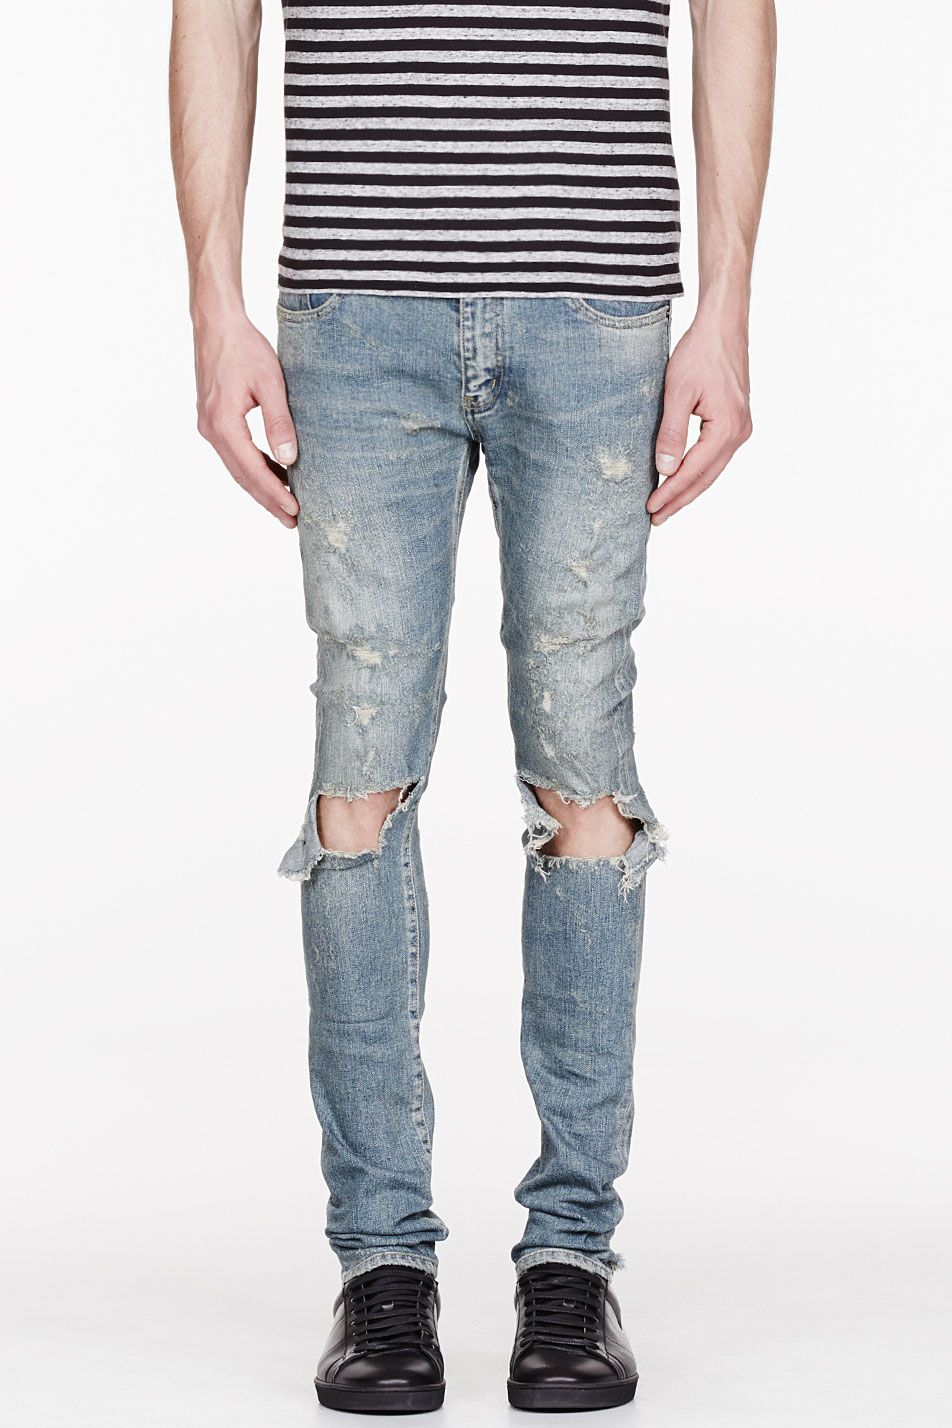 971c1907 SAINT LAURENT Blude faded & destroyed jeans Mens Skinny Ripped Jeans, Denim  Jeans, Riped